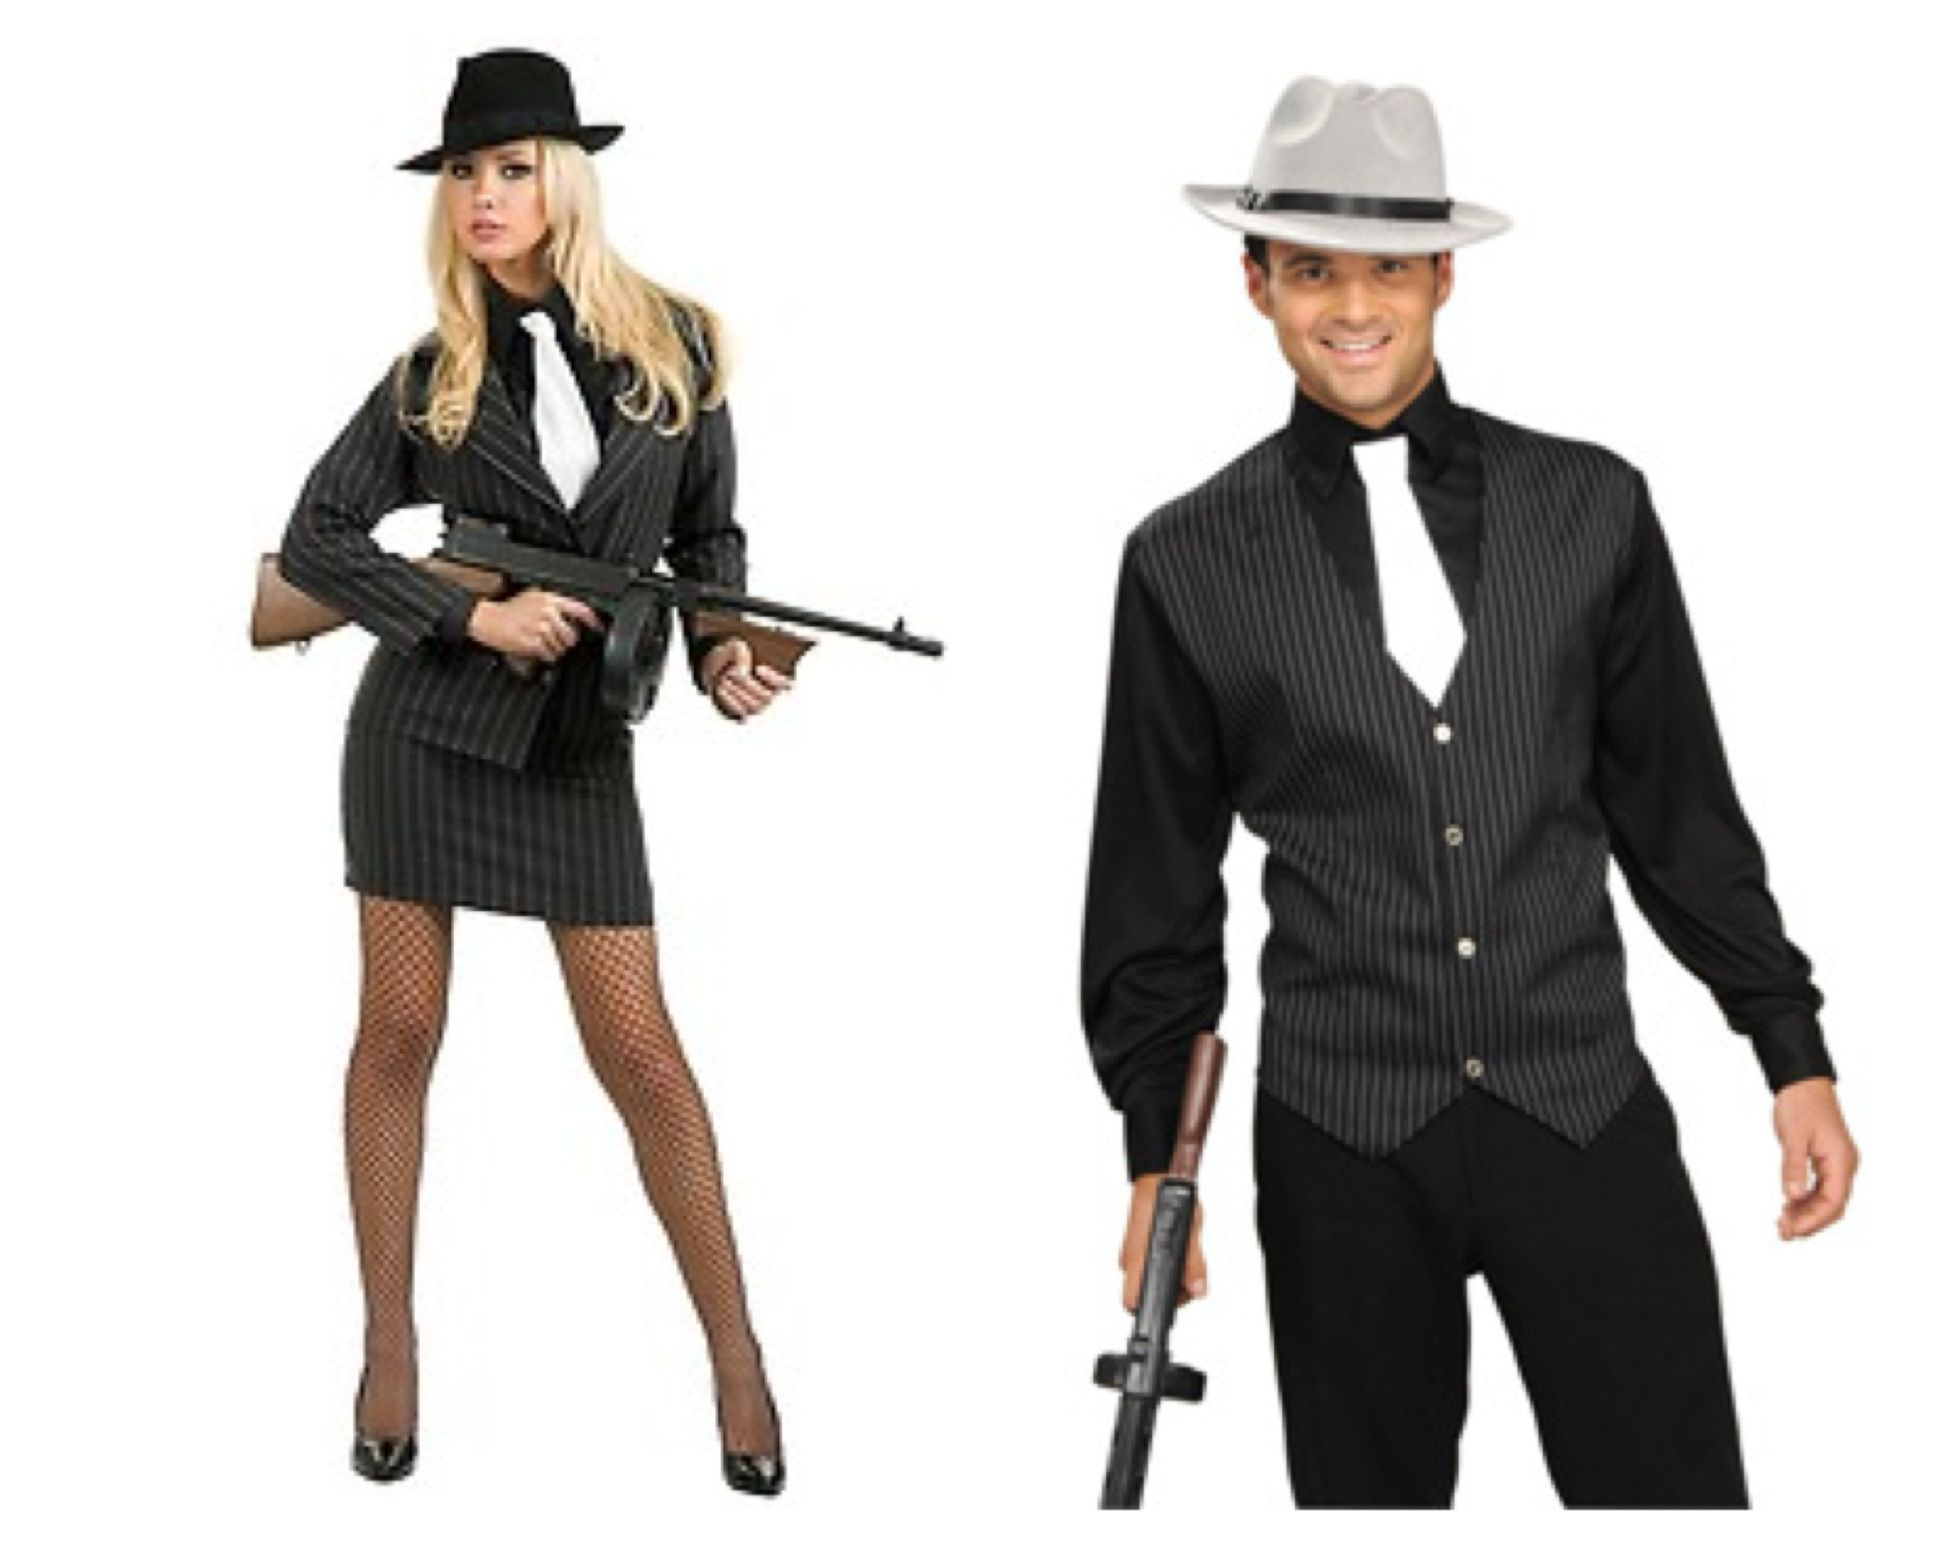 His and hers 1920s gangster costumes